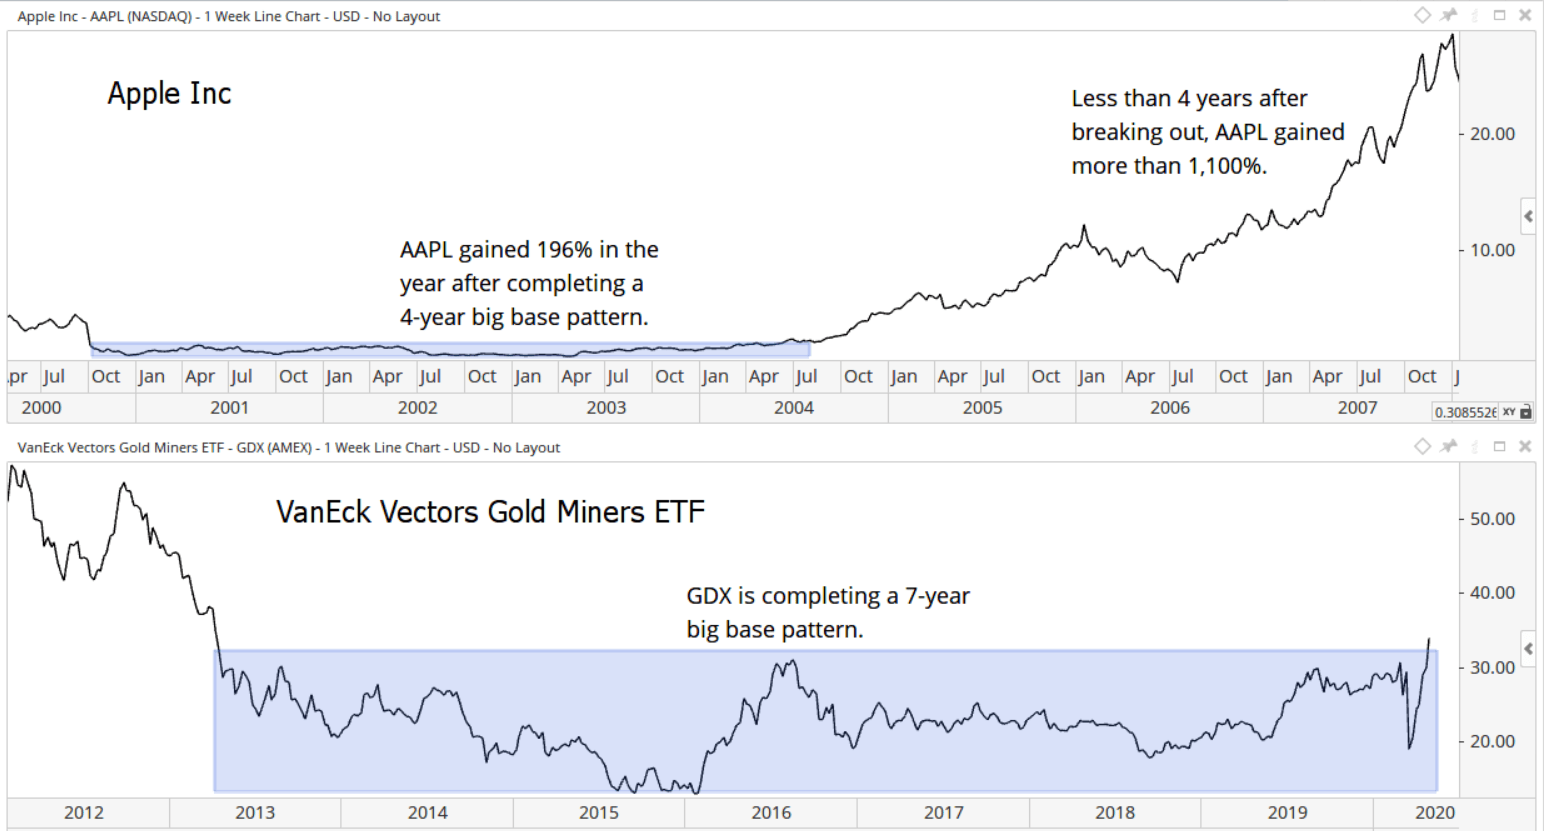 This signal comes after many investors lost interest in gold mining stocks as gold prices moved sideways. The breakout is an indicator that interest in gold is picking up.